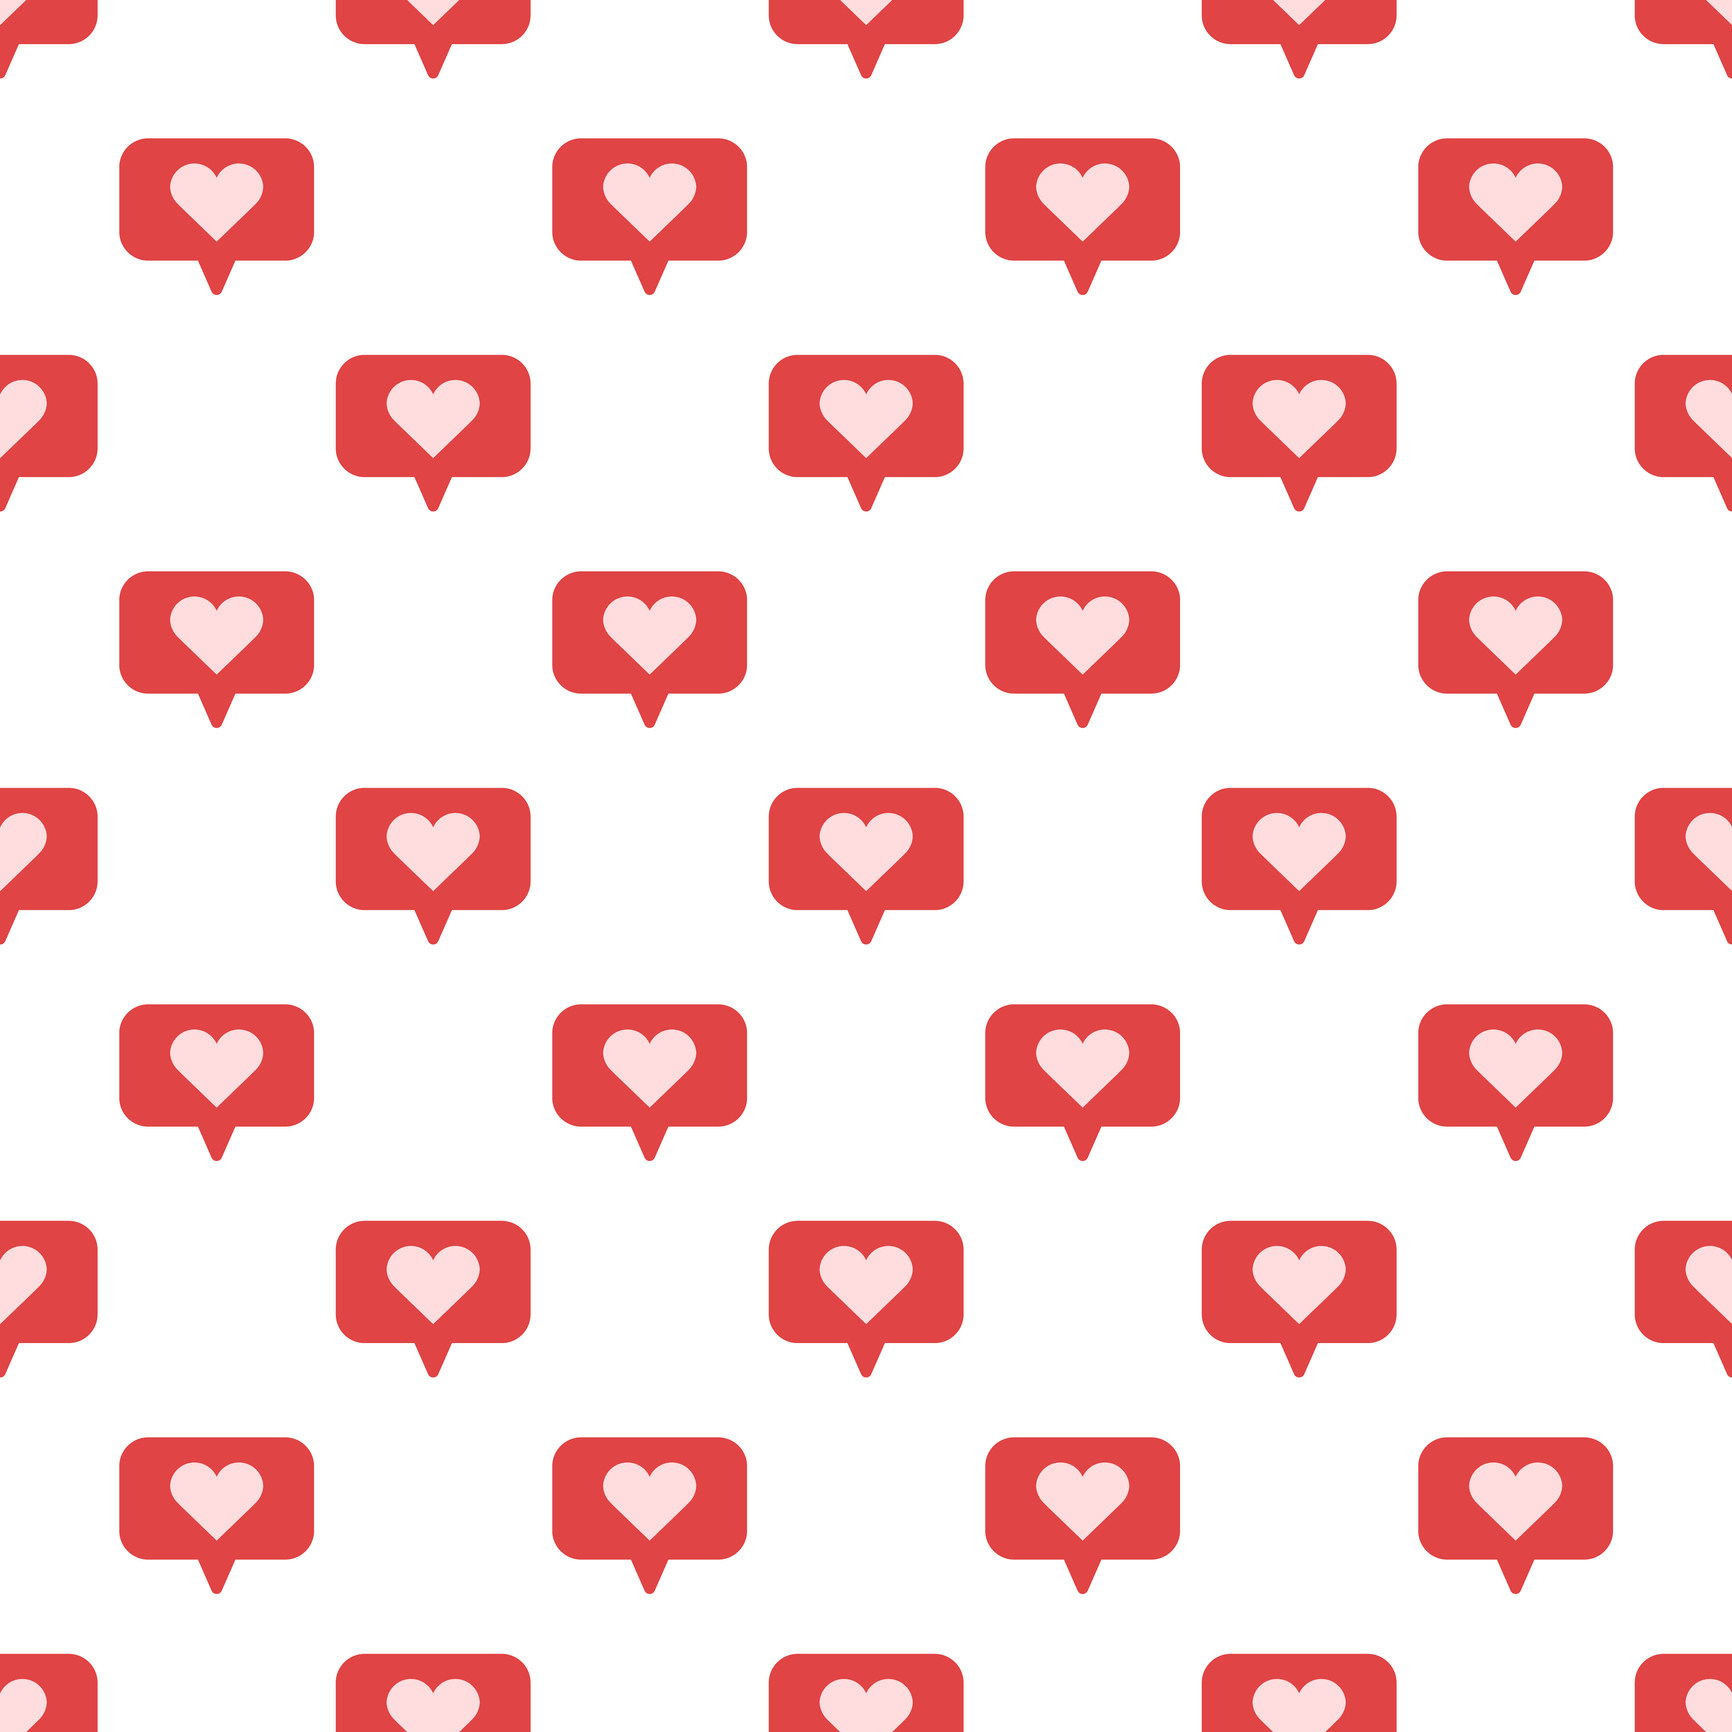 A repeating pattern of heart likes, like from Instagram